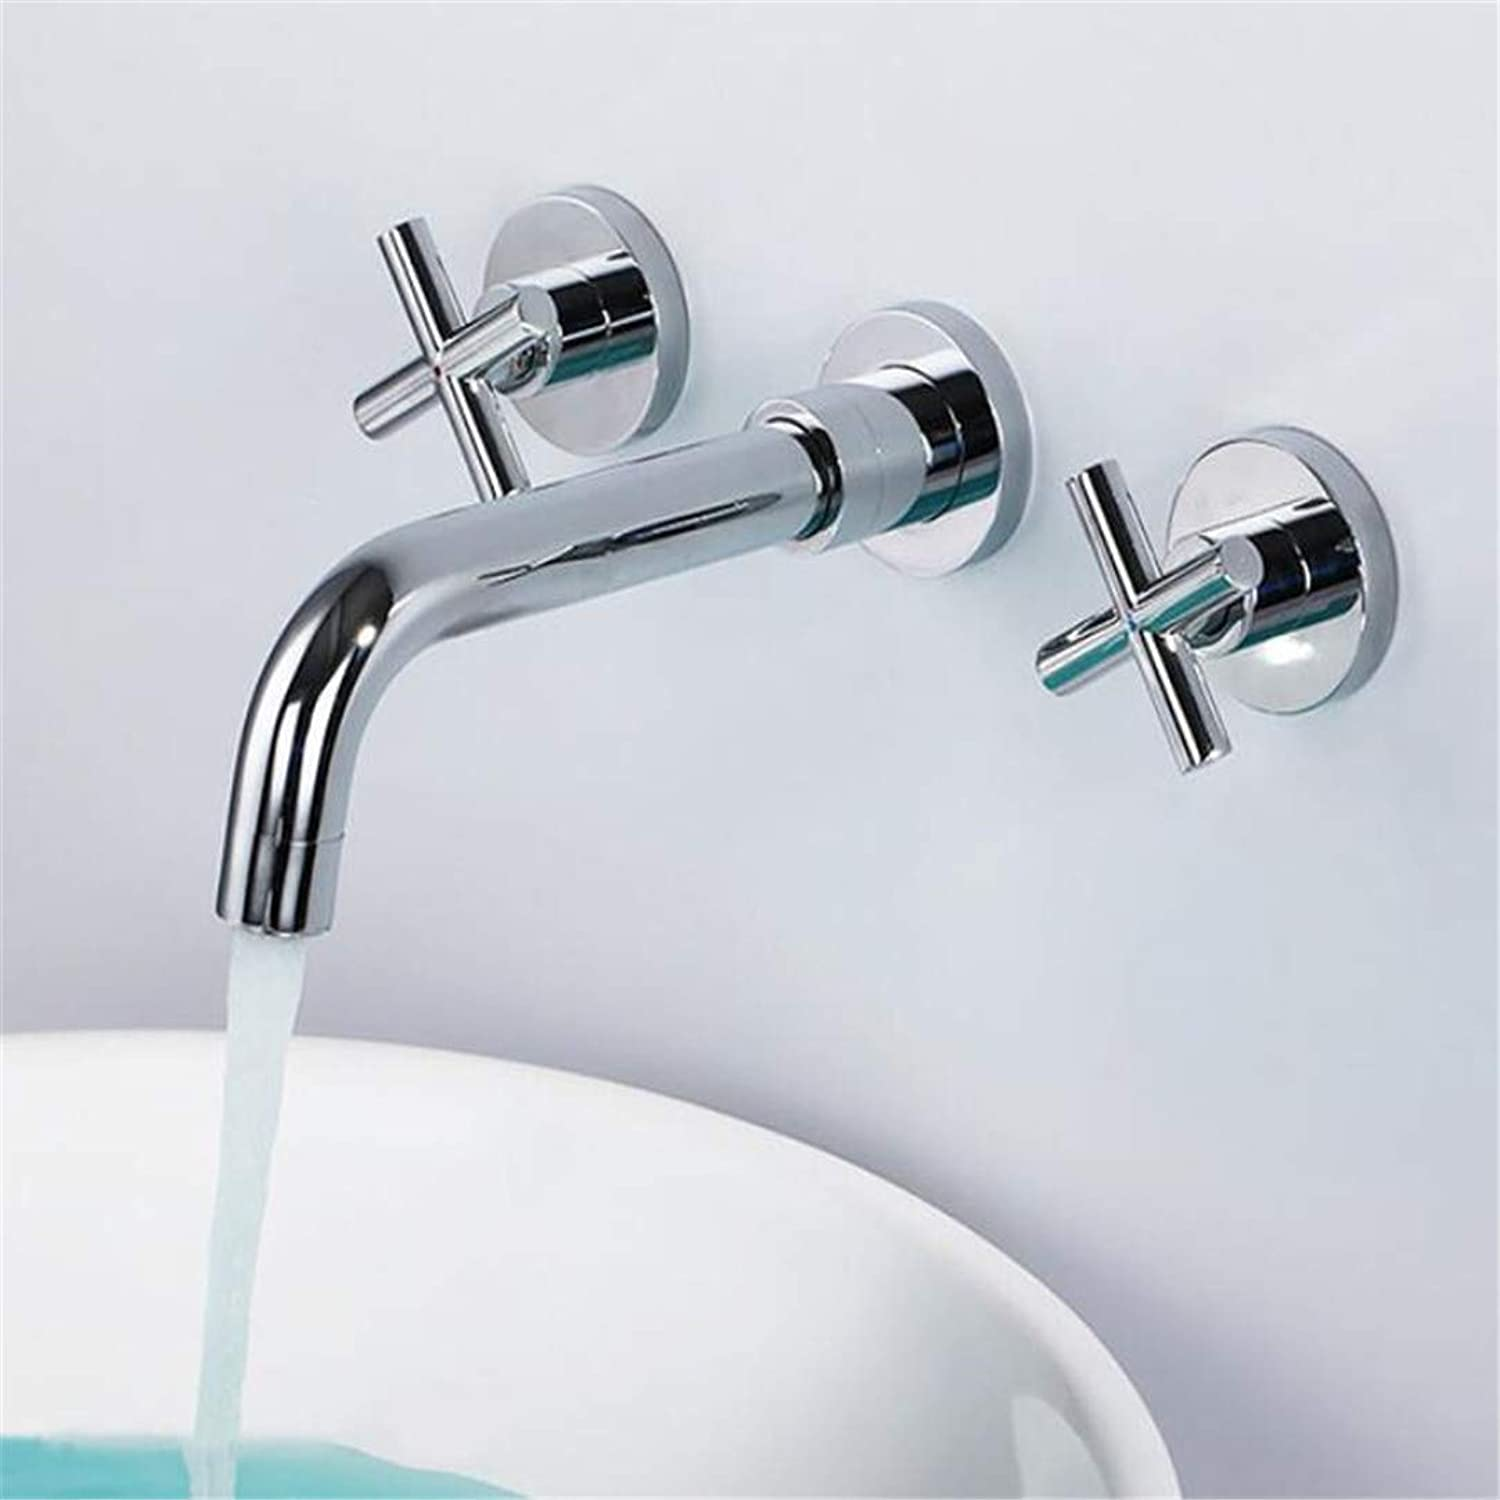 Faucet Washbasin Mixer Brass Chrome Plated Wall Mounted Double Handle Bathroom Faucet High Quality Round Sink Mixer Widespread Water Tap